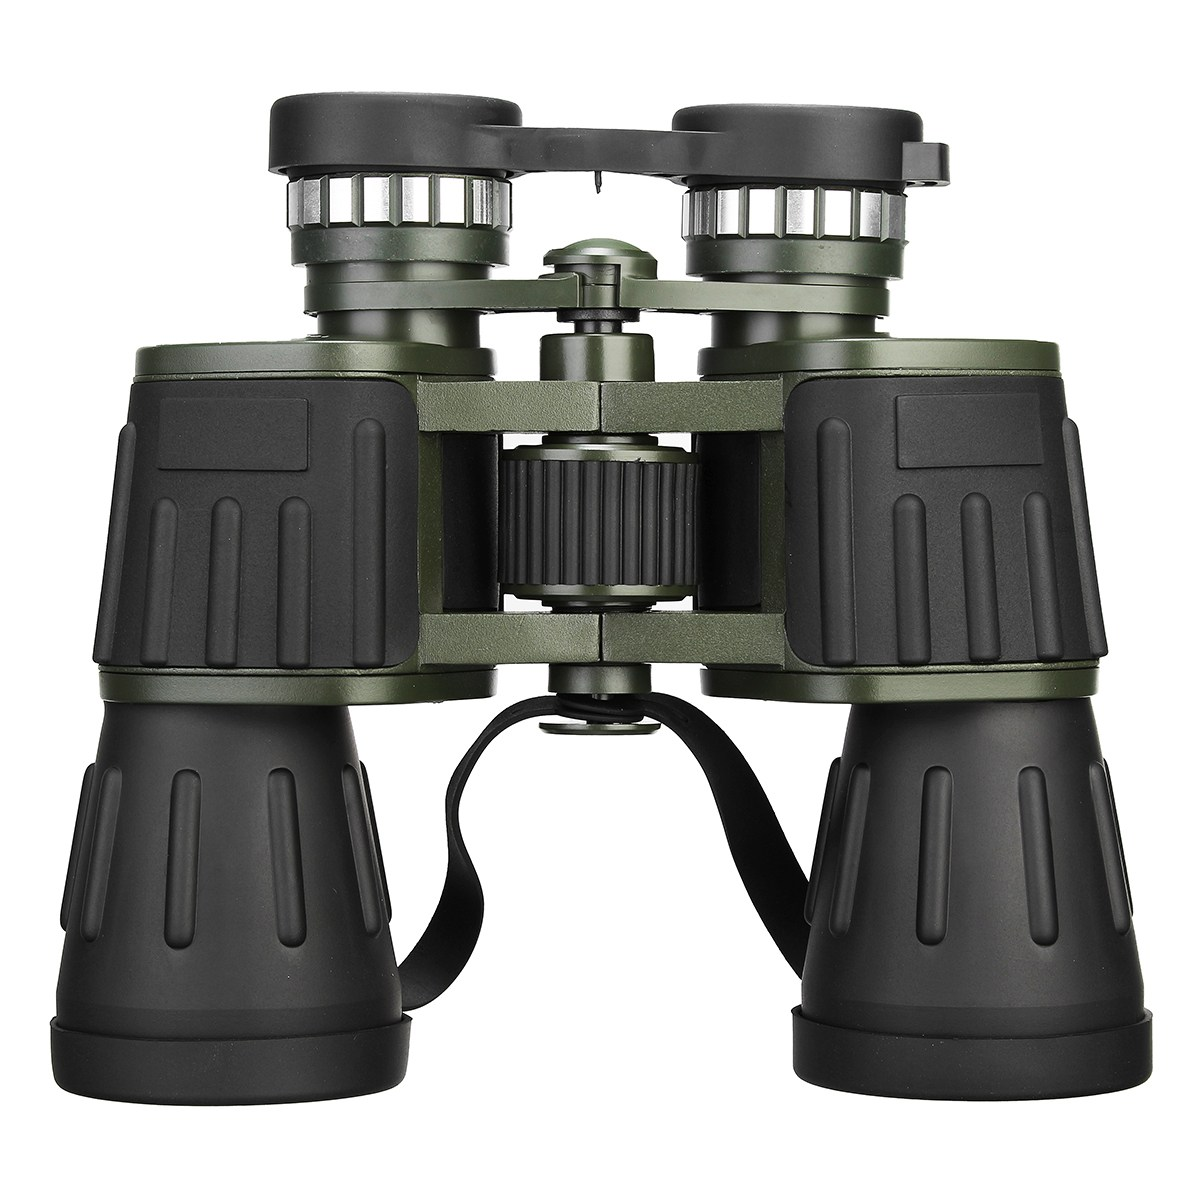 Outdoor hiking 60x50 Night Vision Military Army Zoomable Powerful Binoculars HD for Hunting Camping equipment survival kit zoom binoculars 30 260x160 level light night vision adjustable telescopes for camping hiking hunting ems